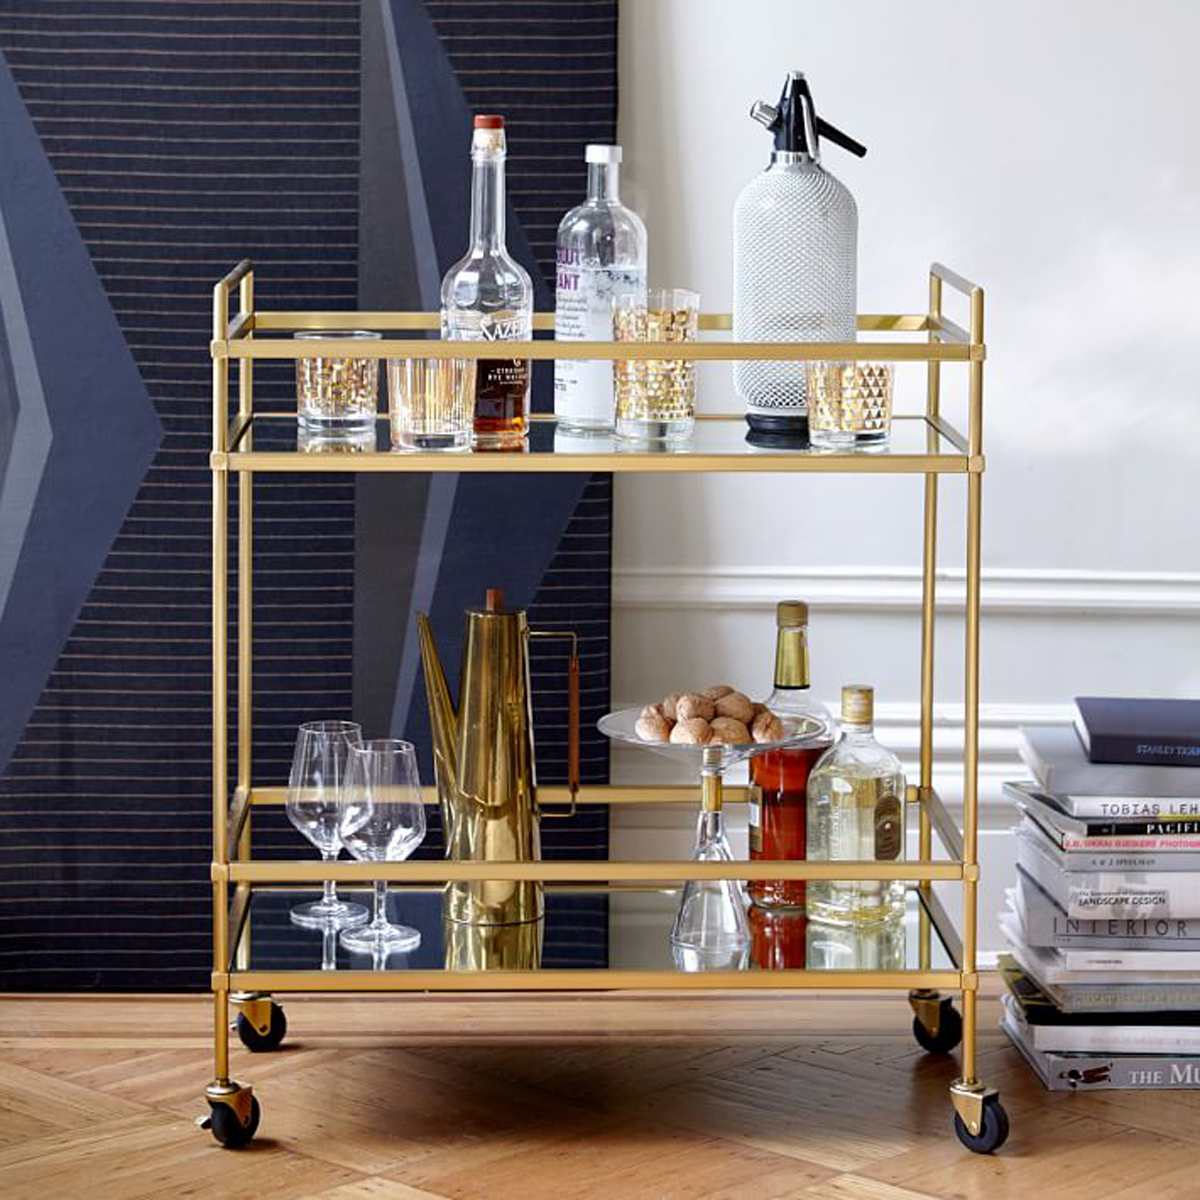 For a big gift or major bar upgrade, a gorgeous bar cart is a great way to display your liquors and tools. West Elm's Terrace Bar Cart has that old-school aesthetic, but if that's beyond your budget, the Kinley Cart on Wayfair has the same vibe for a quarter of the price tag.Kinley Bar Cart, $75 at wayfair.comTerrace Bar Cart, $400 at westelm.com